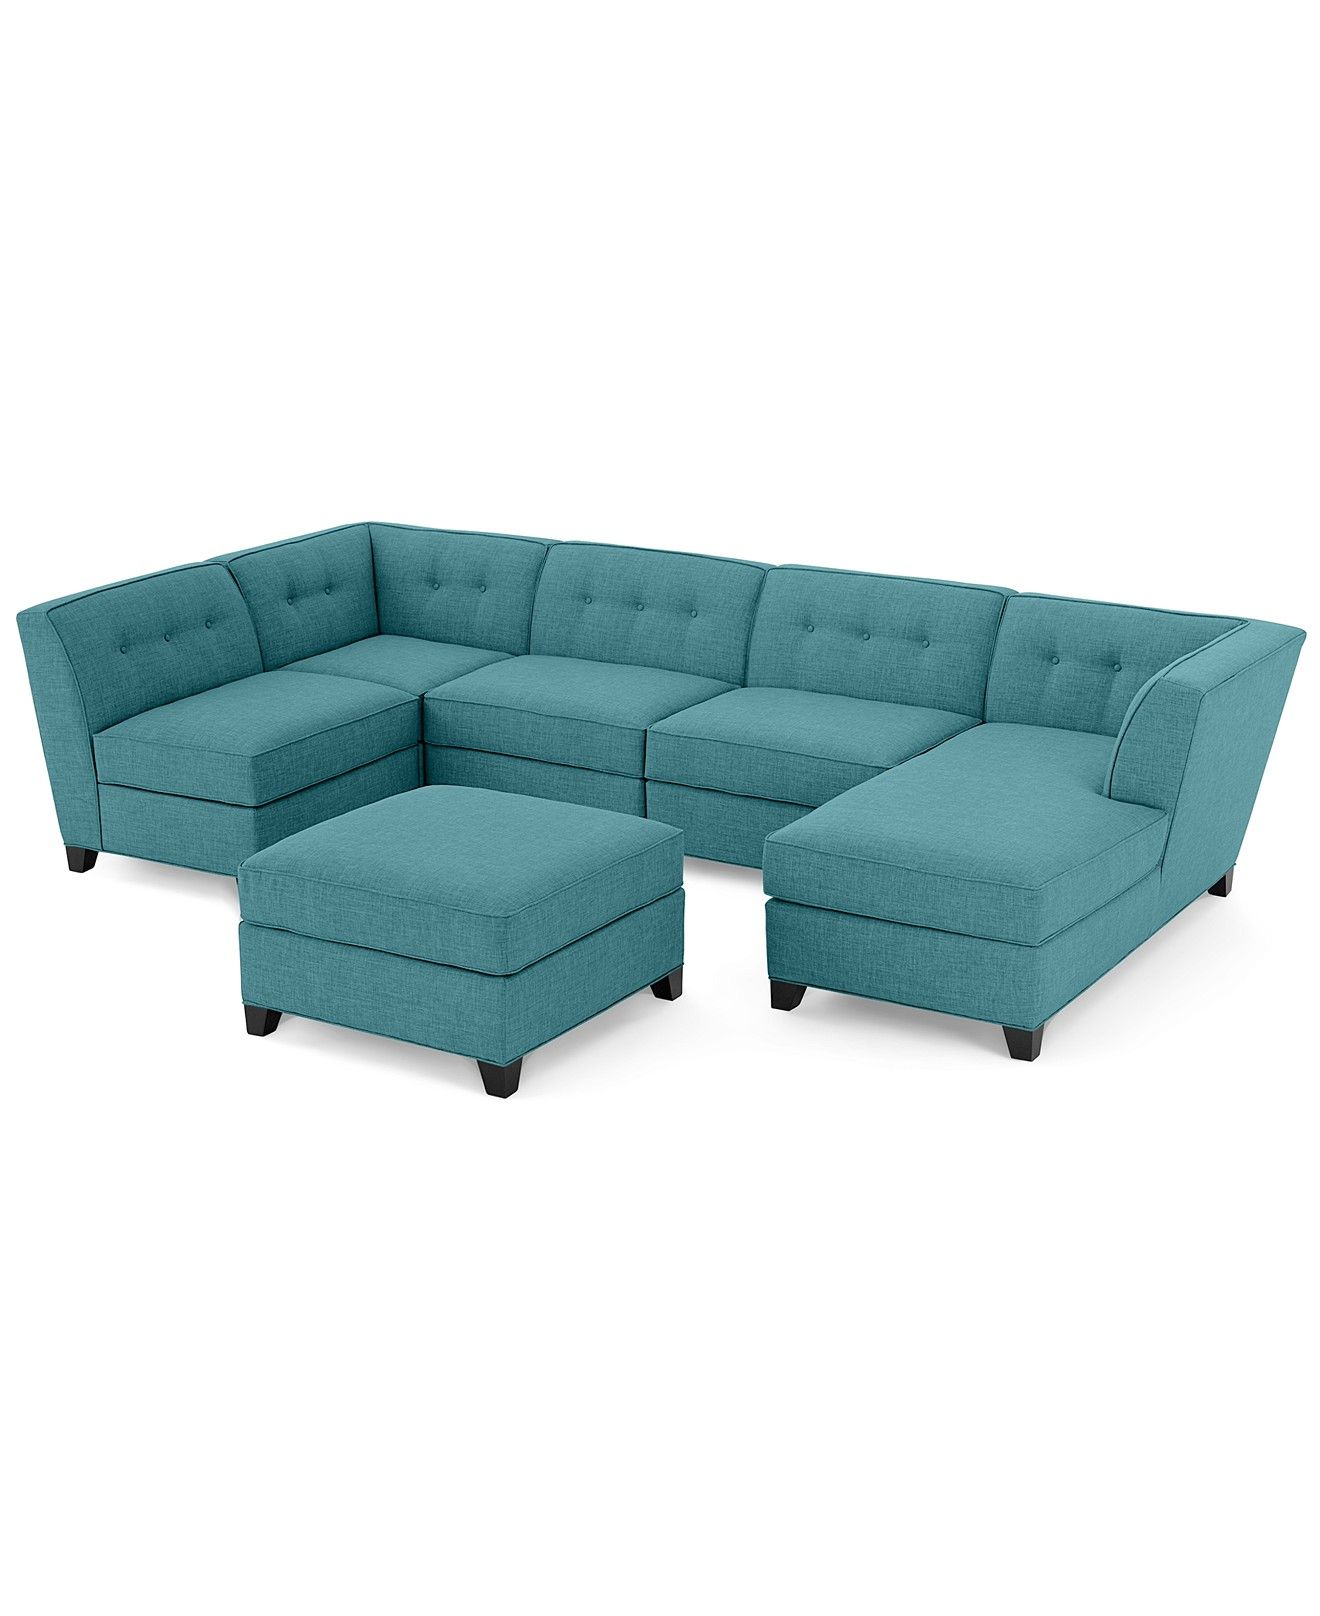 Harper Fabric 6 Piece Modular Chaise & Ottoman Sectional Sofa in